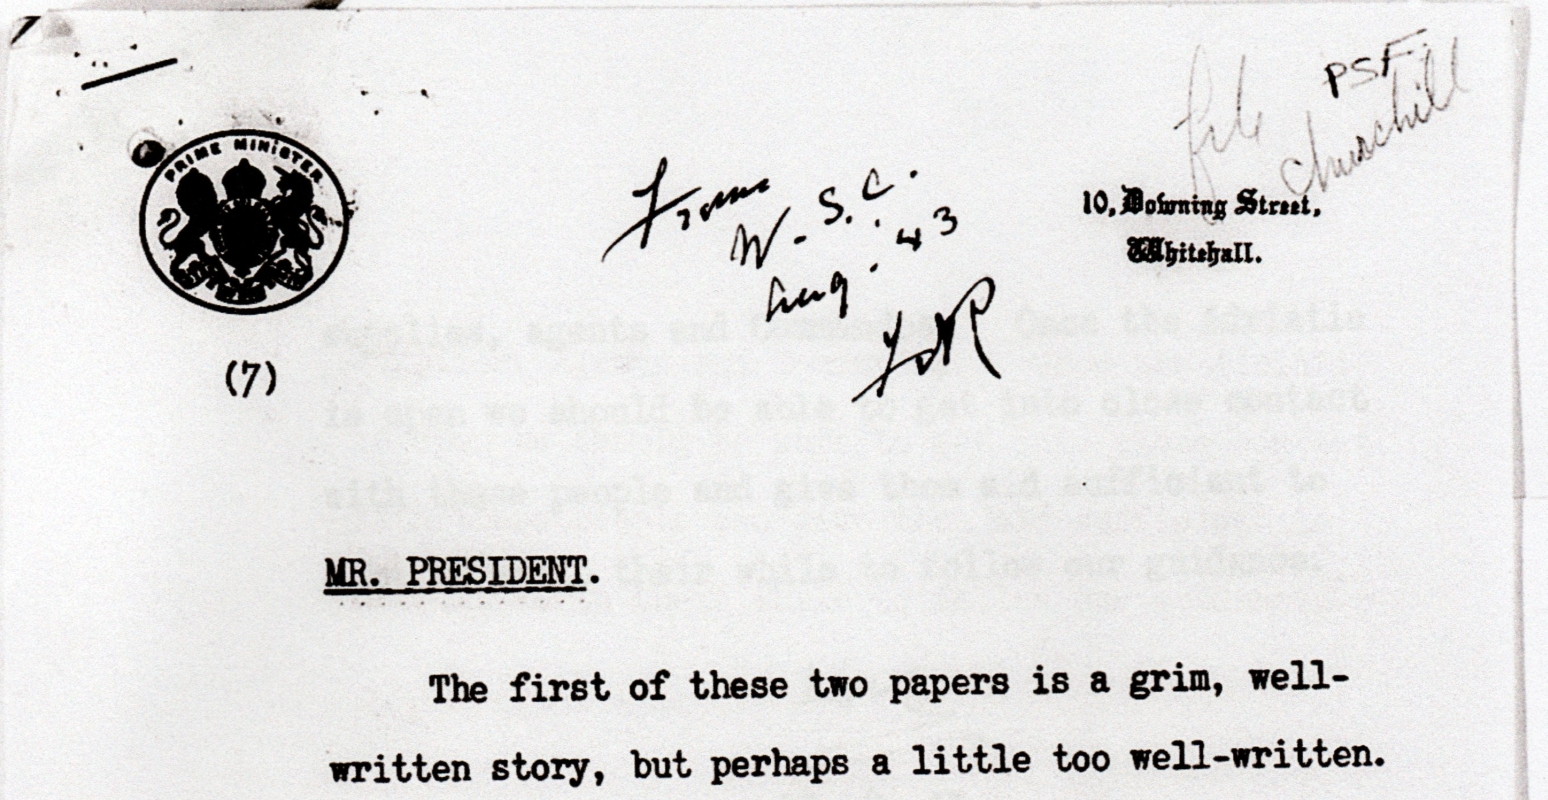 The top part of Churchill's note to Roosevelt, on Downing Street, Whitehall letterhead.